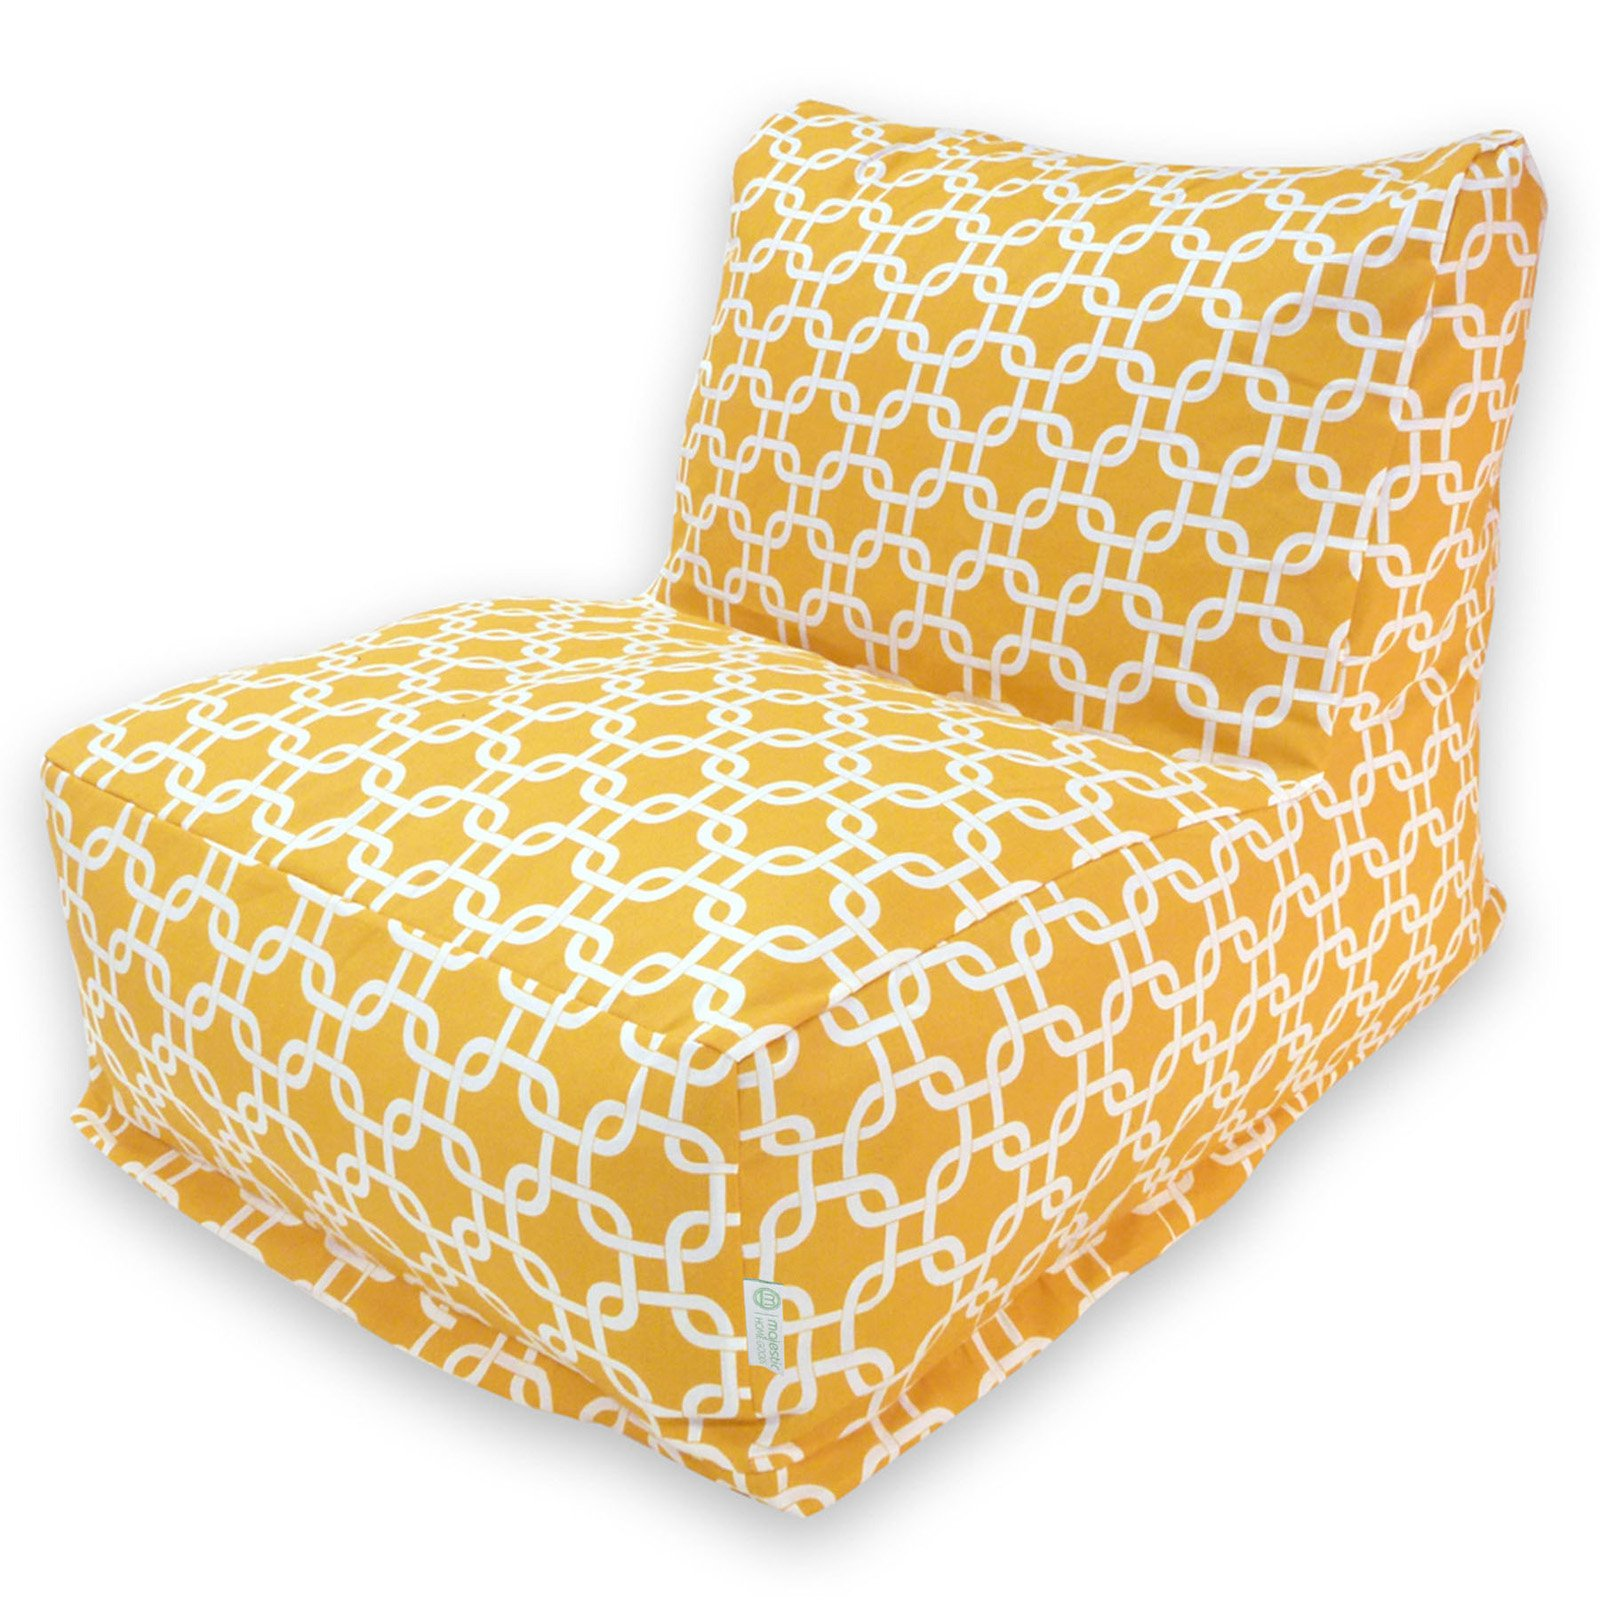 Majestic Home Goods Links Outdoor Bean Bag Chair Lounger